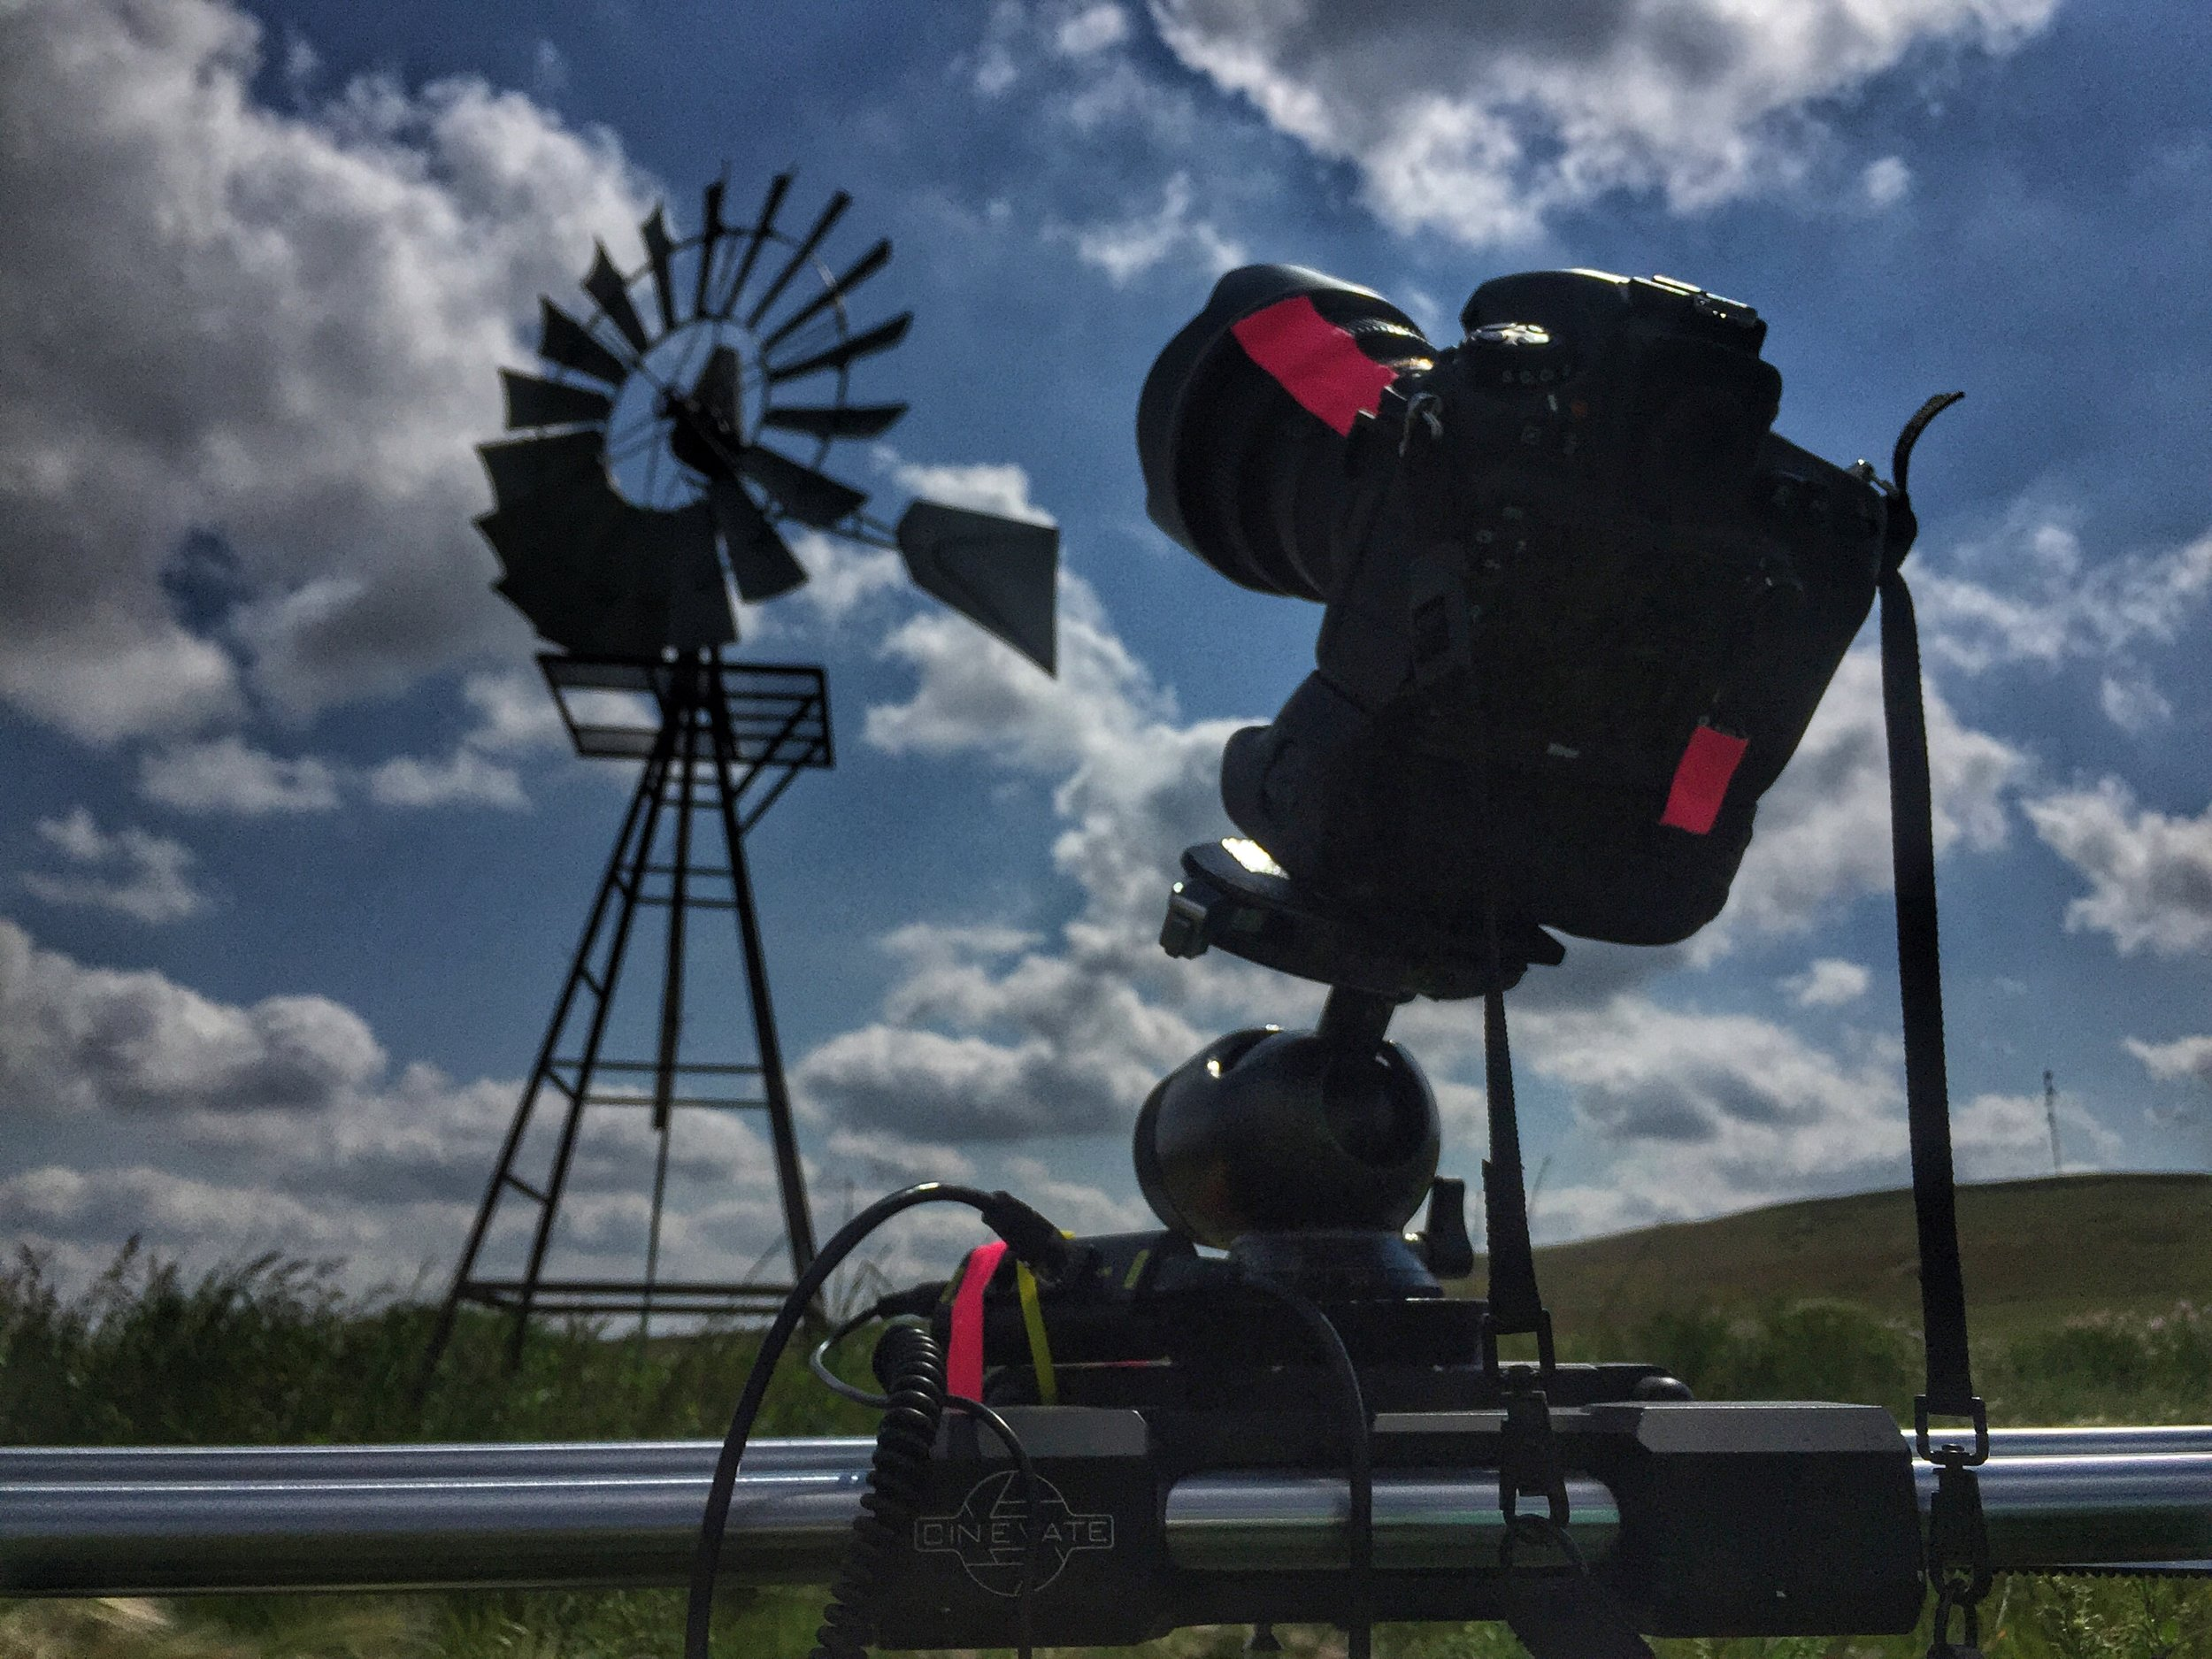 Our favorite piece of timel-apase equipment - the Cinevate motion-control sytem on their Atlas 200 slider. It's the most solid motion-control equipment available.